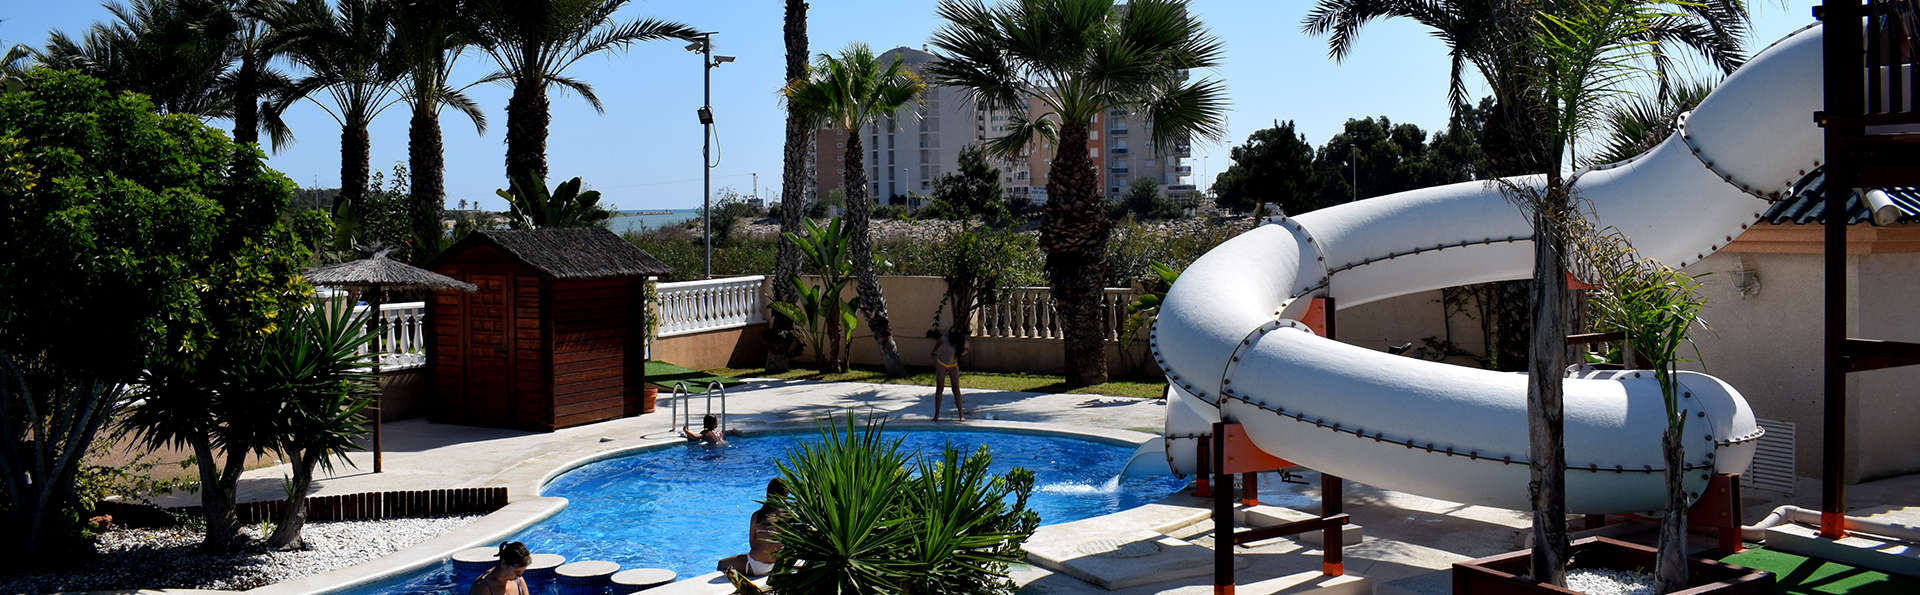 Alannia Guardamar Resort - Edit_Pool5.jpg